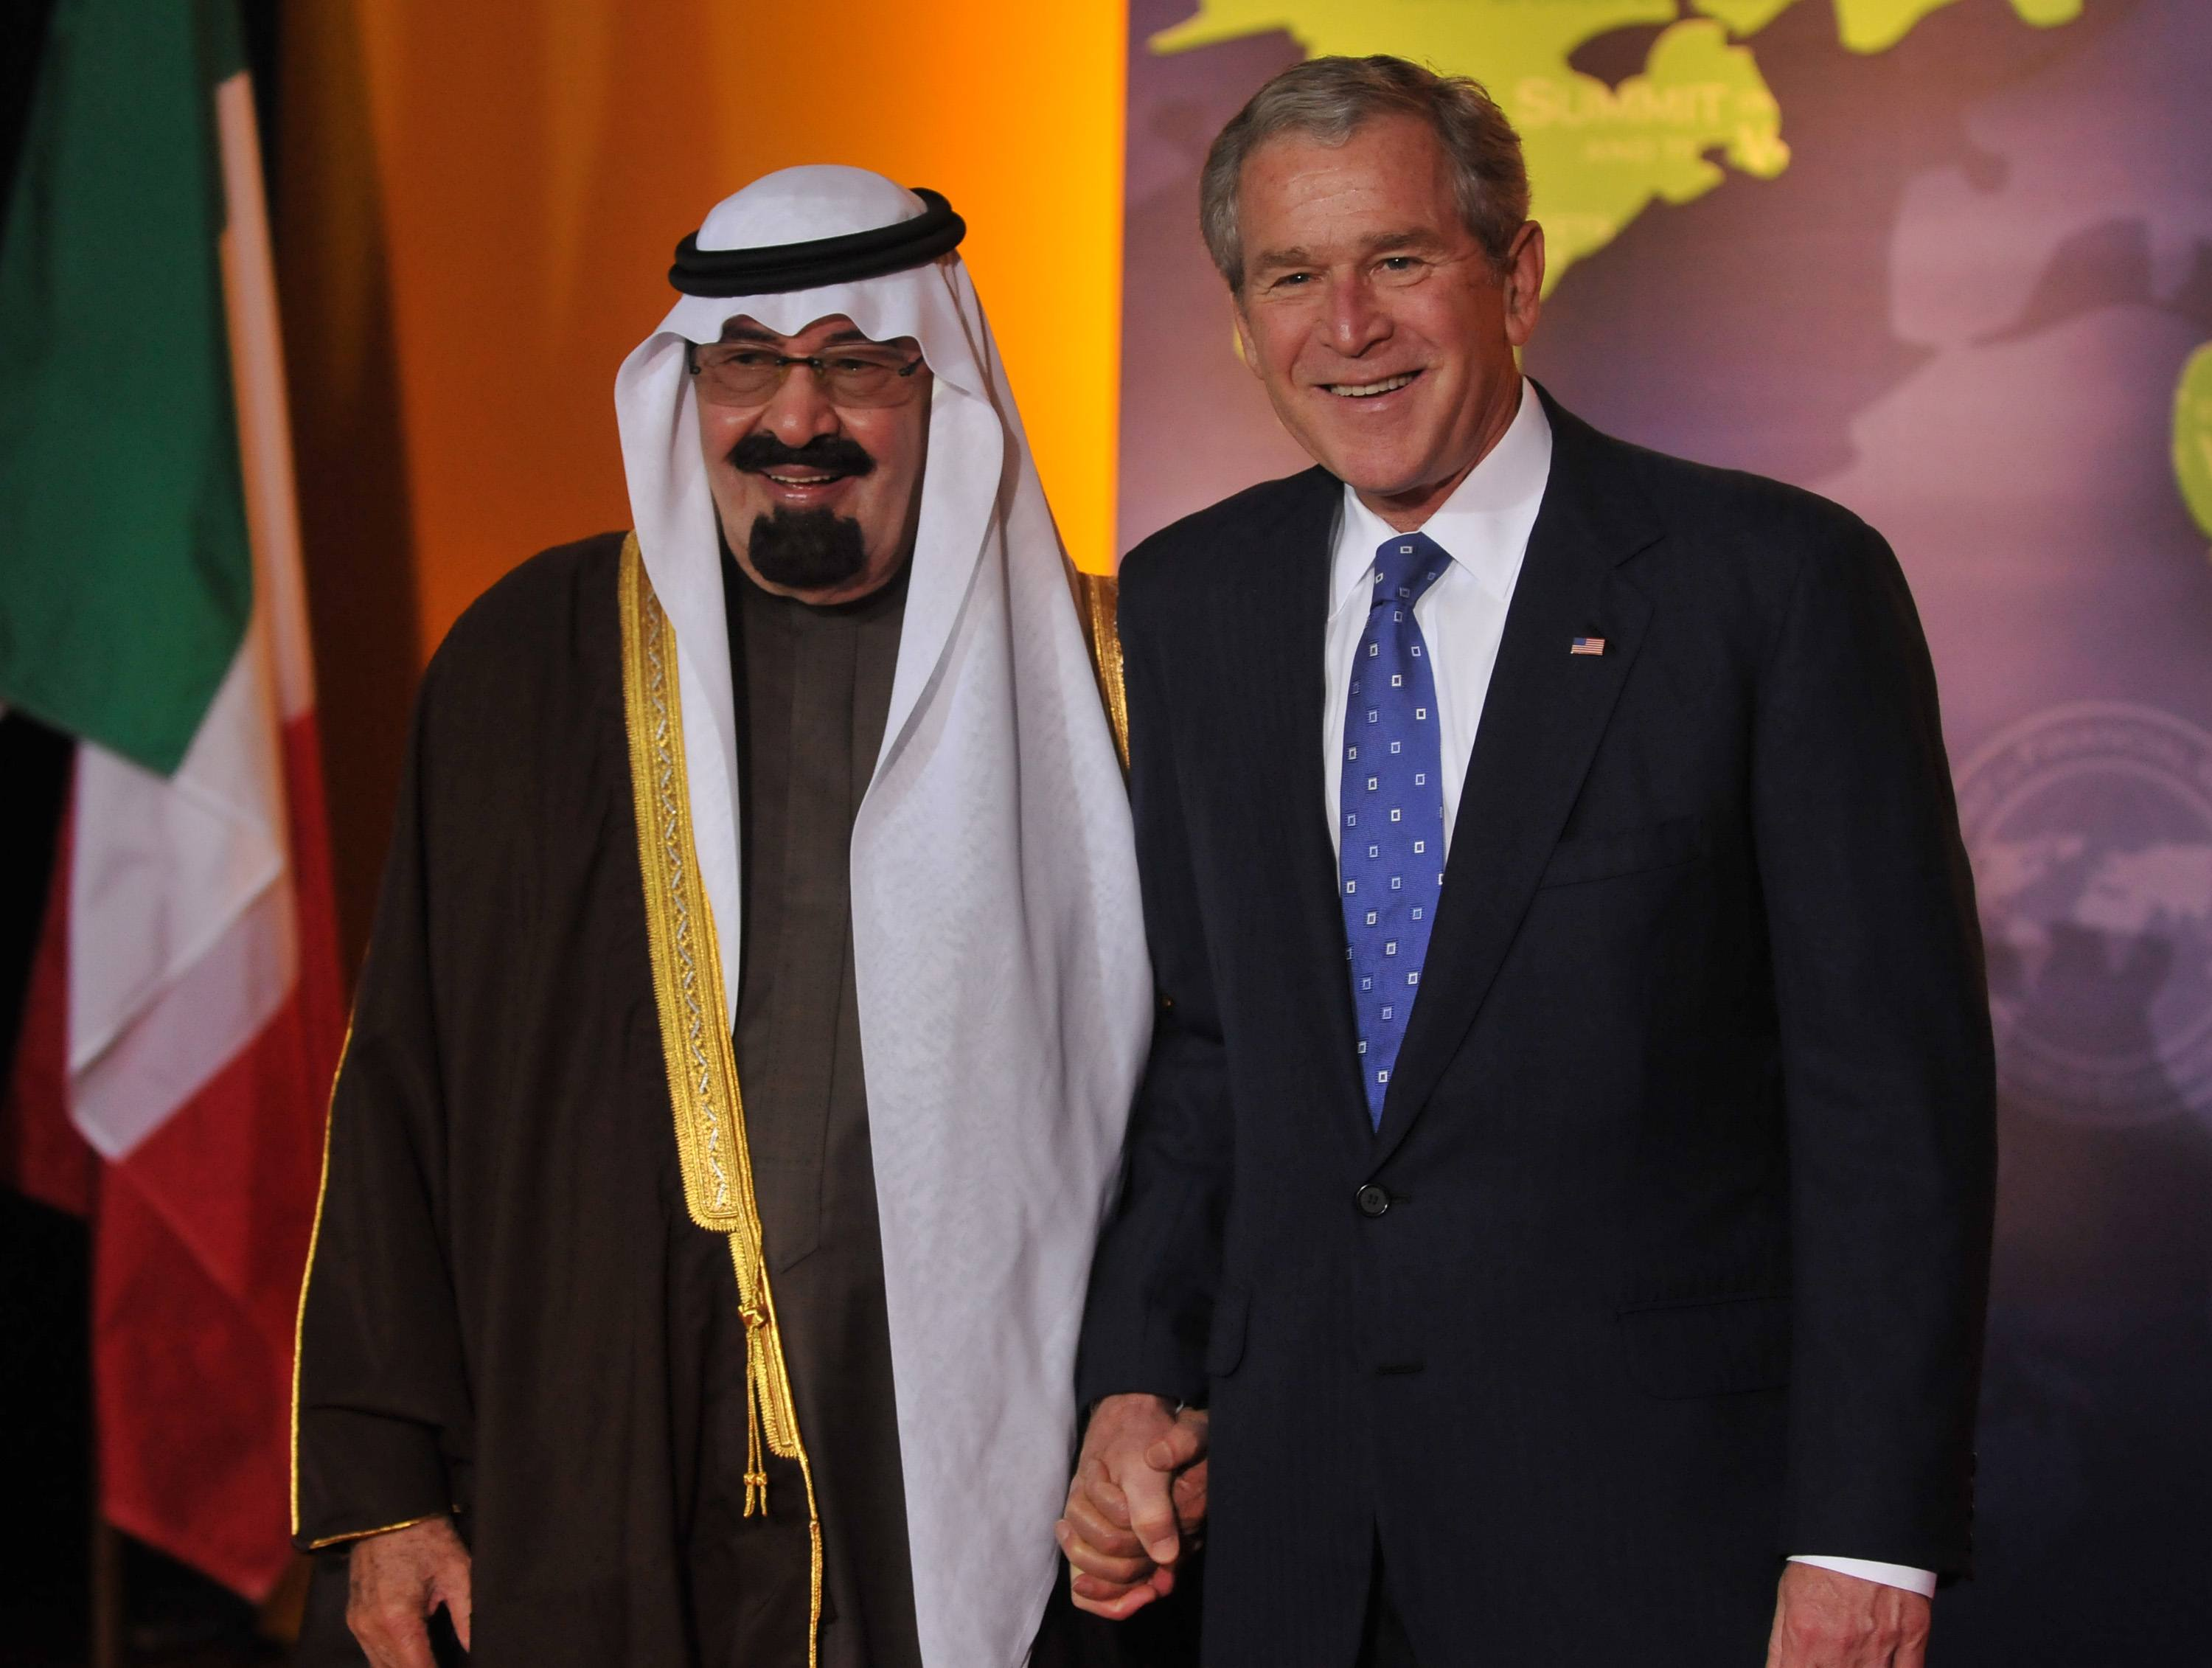 U.S. President George W. Bush poses with Saudi Arabian King Abdullah